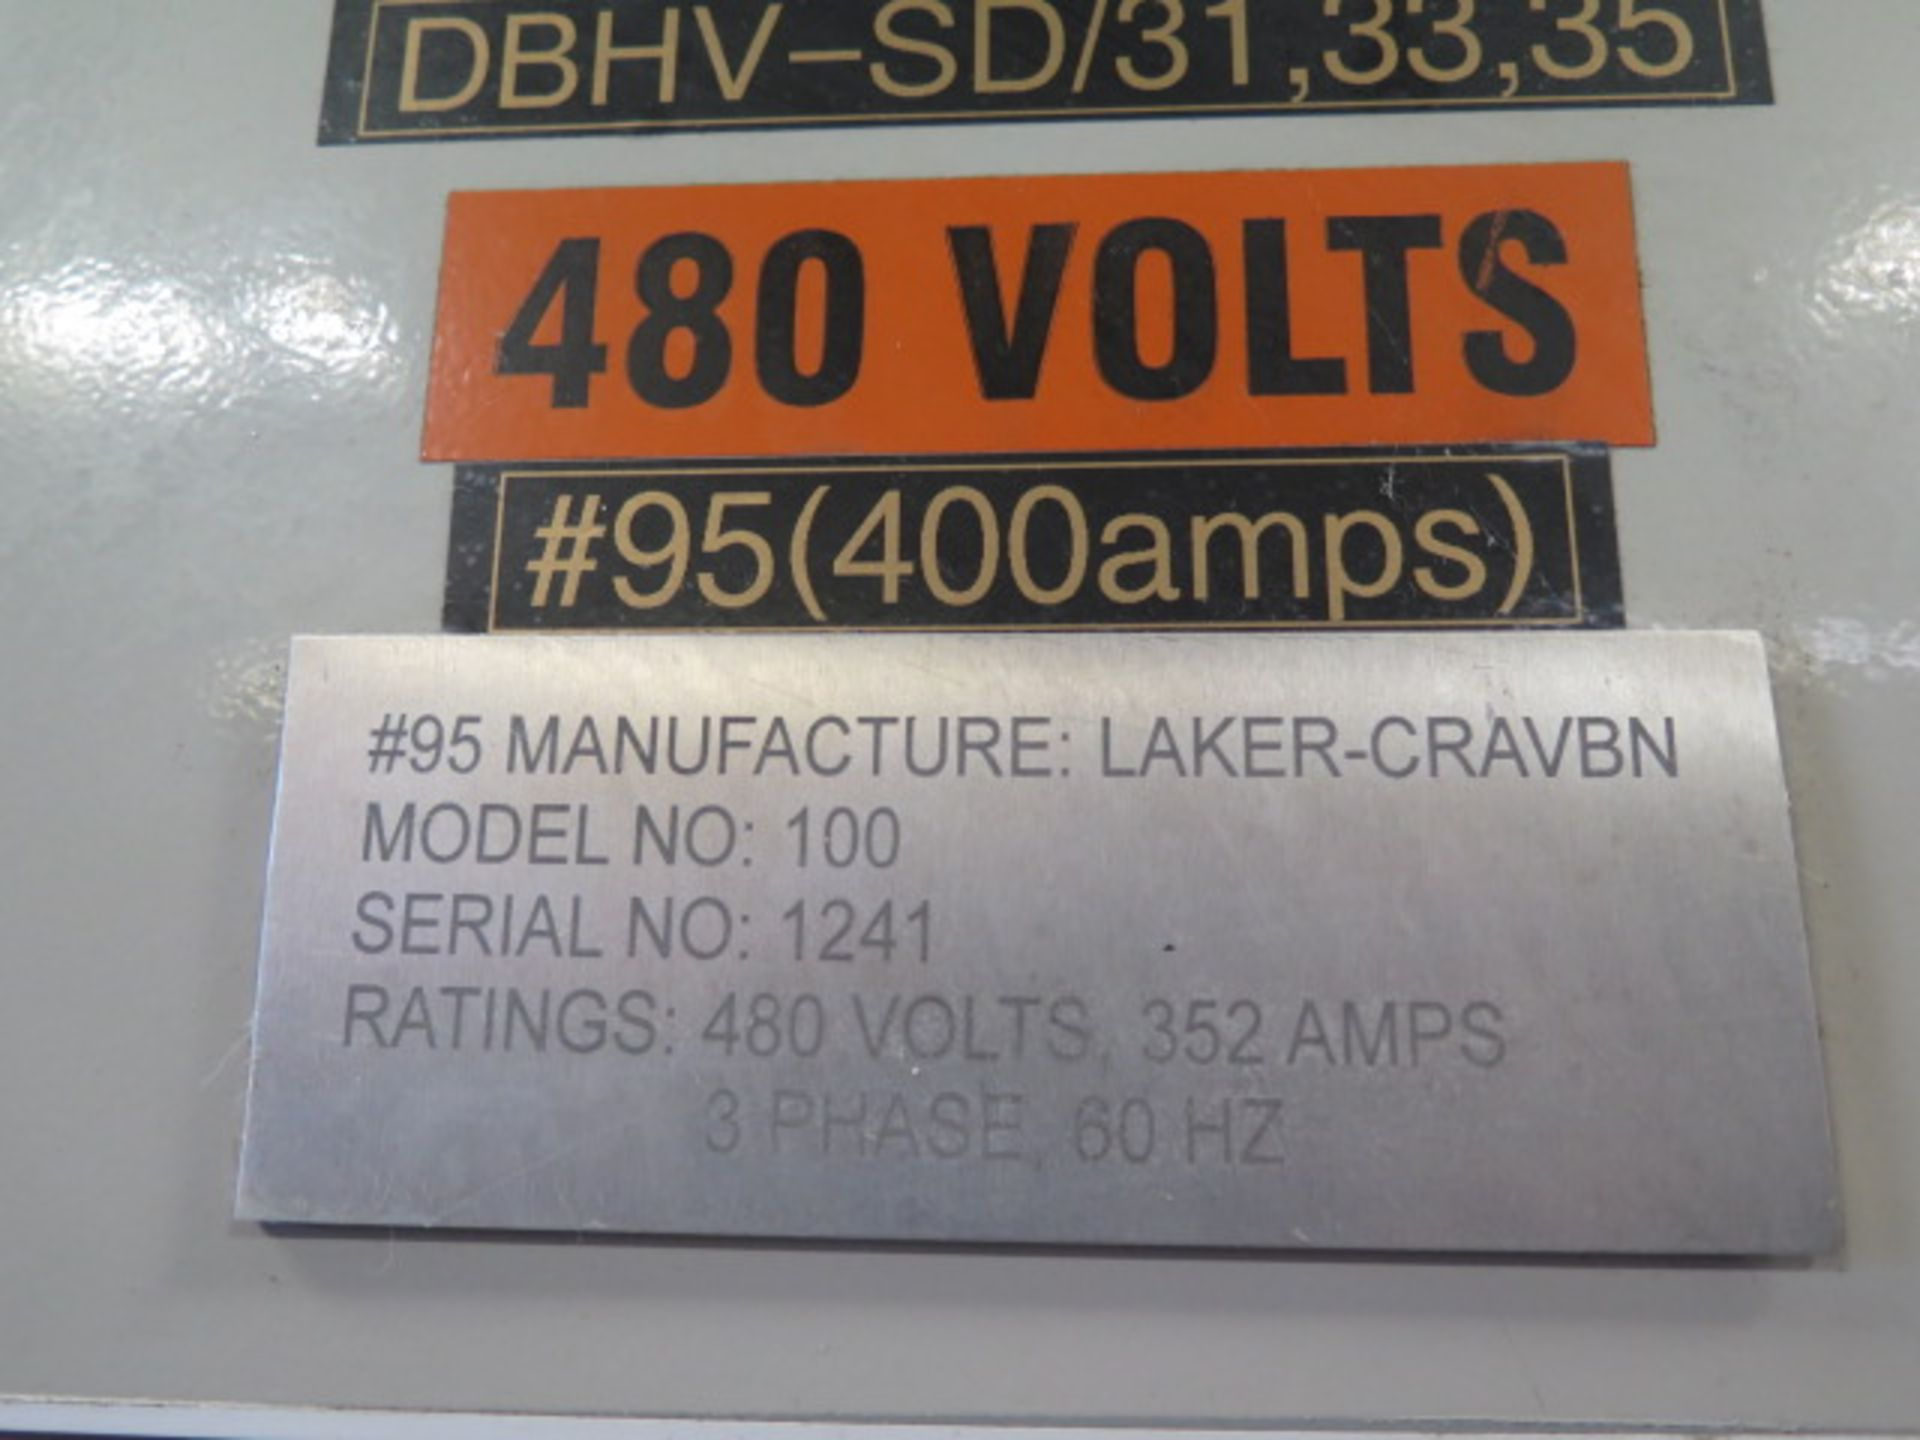 Laker-Craven-100 CNC Deep Hole Drilling Machine s/n 1241 w/ Fanuc Power MATE Controls, SOLD AS IS - Image 28 of 41